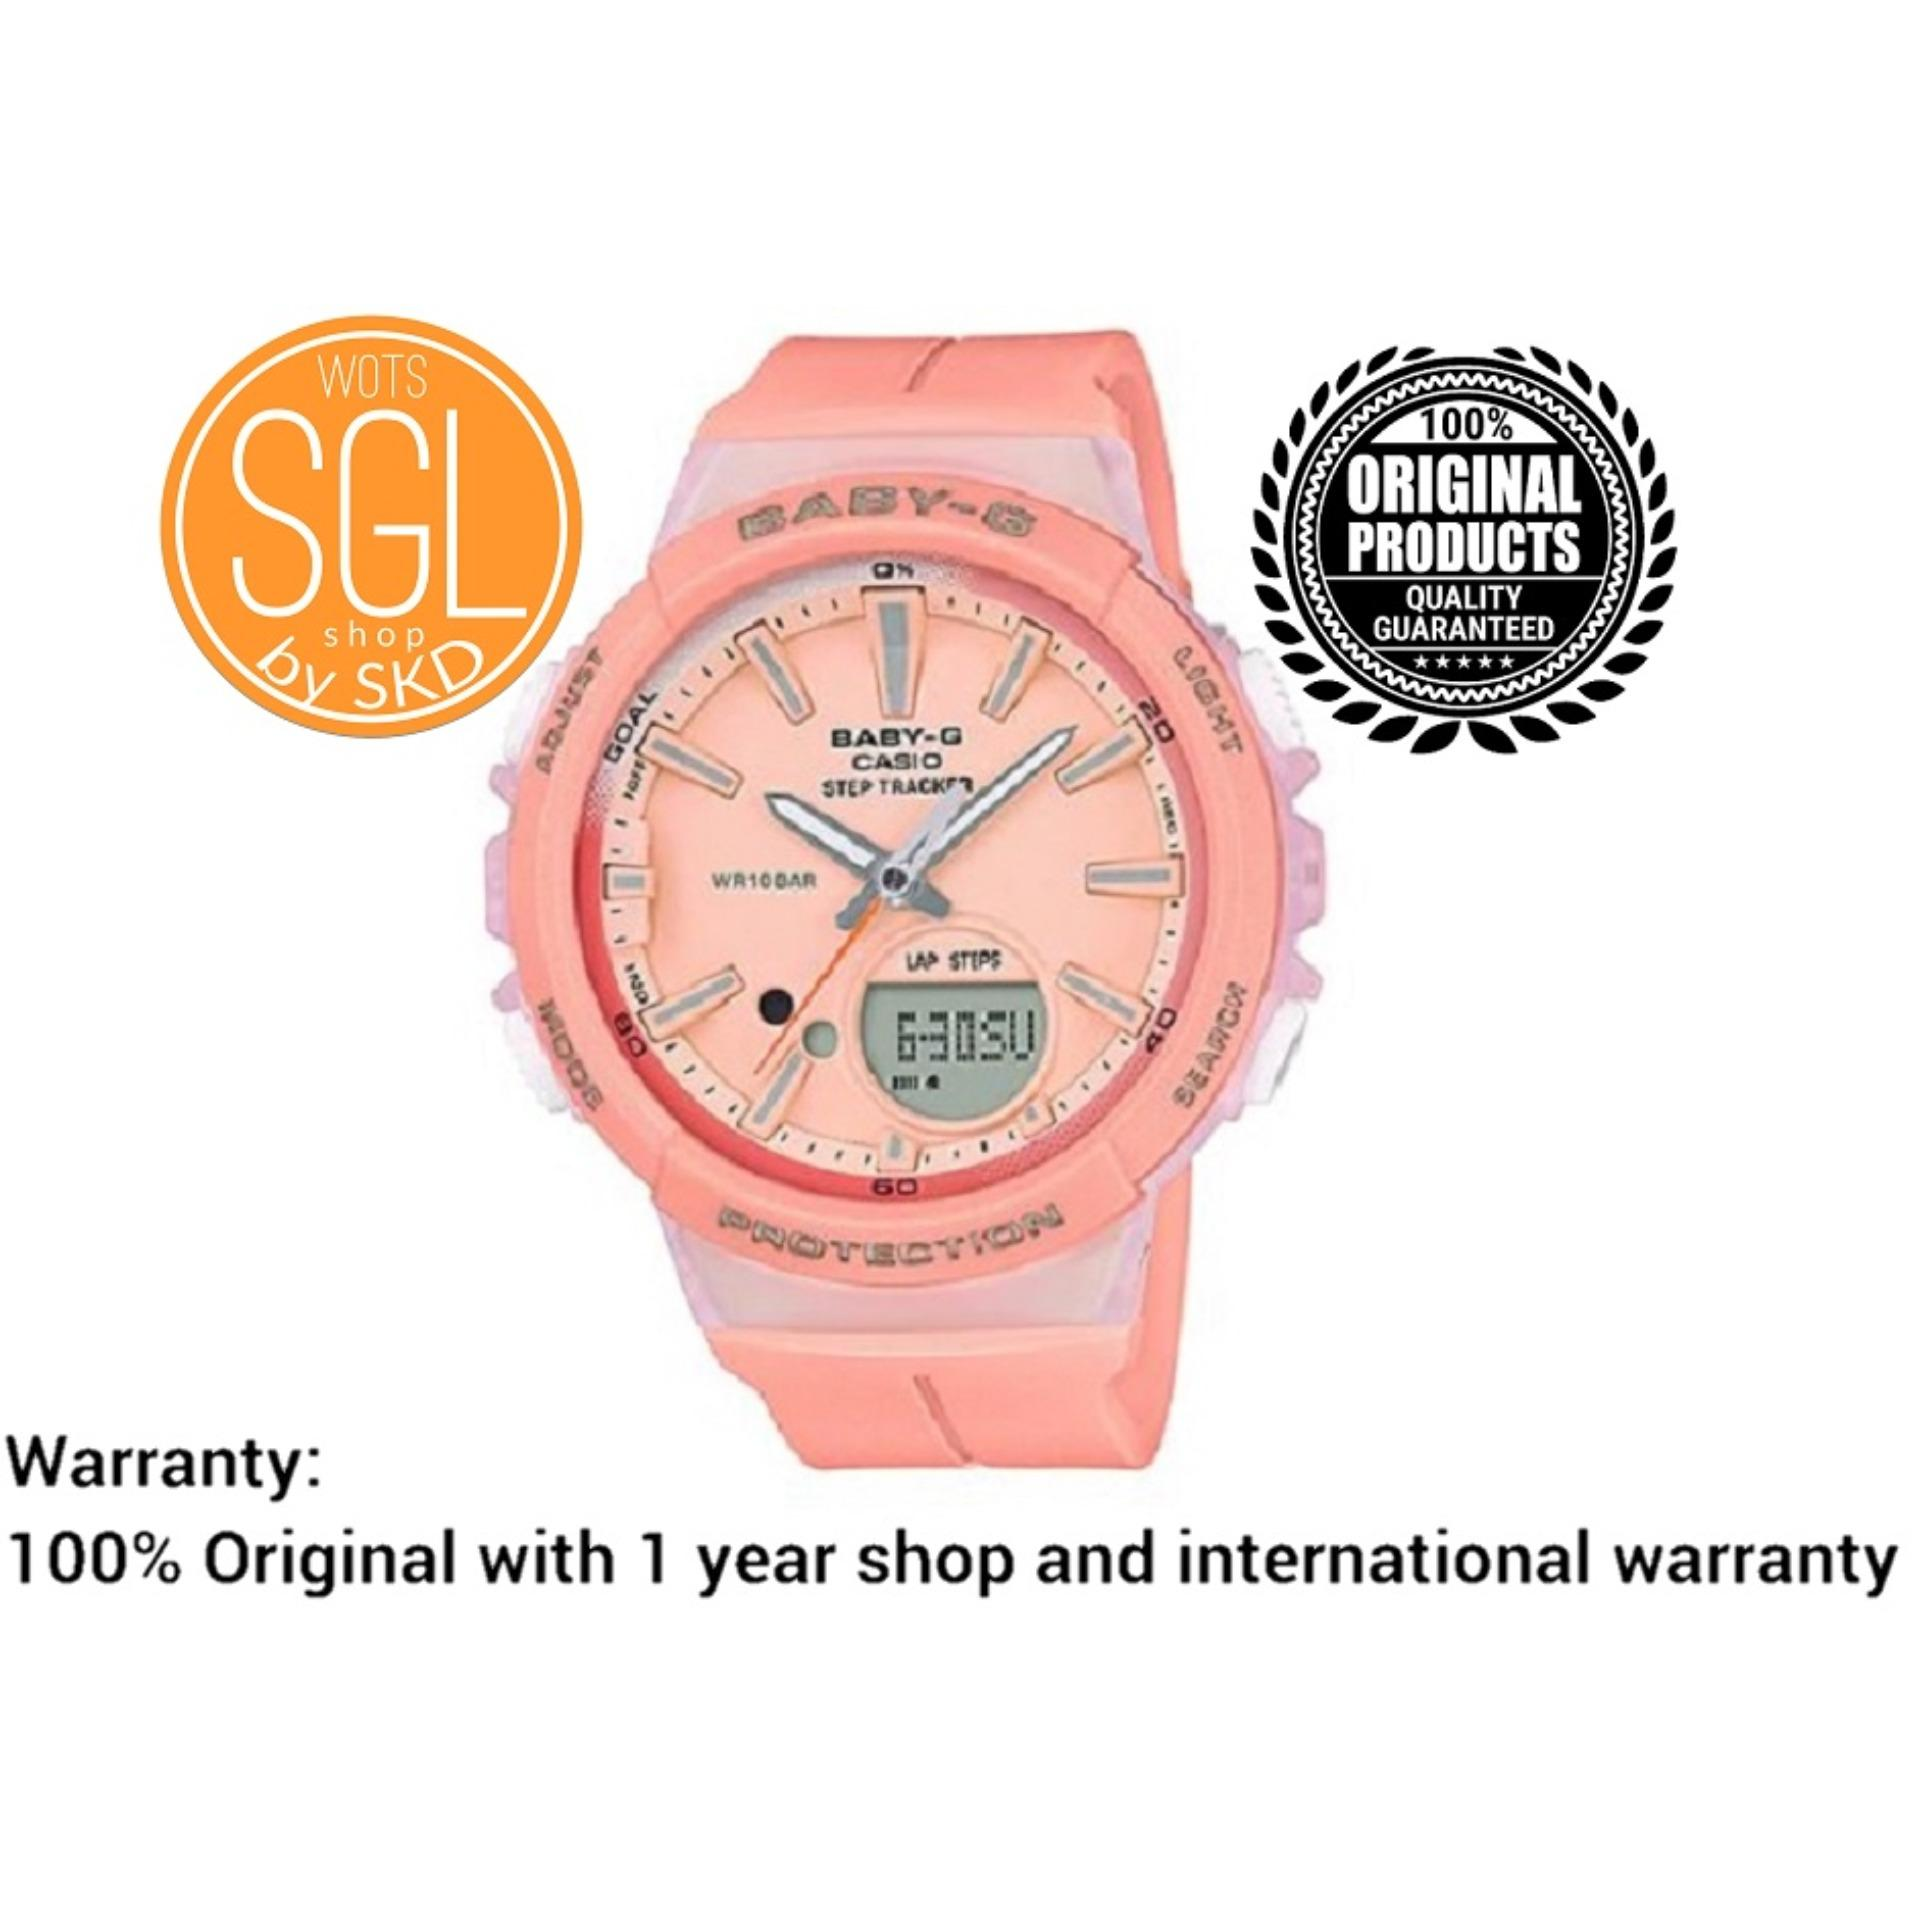 c7d10f22a23ec Casio Baby-G Watch with Step Tracker PINK Watch BGS100-4 SGL WOTS SHOP